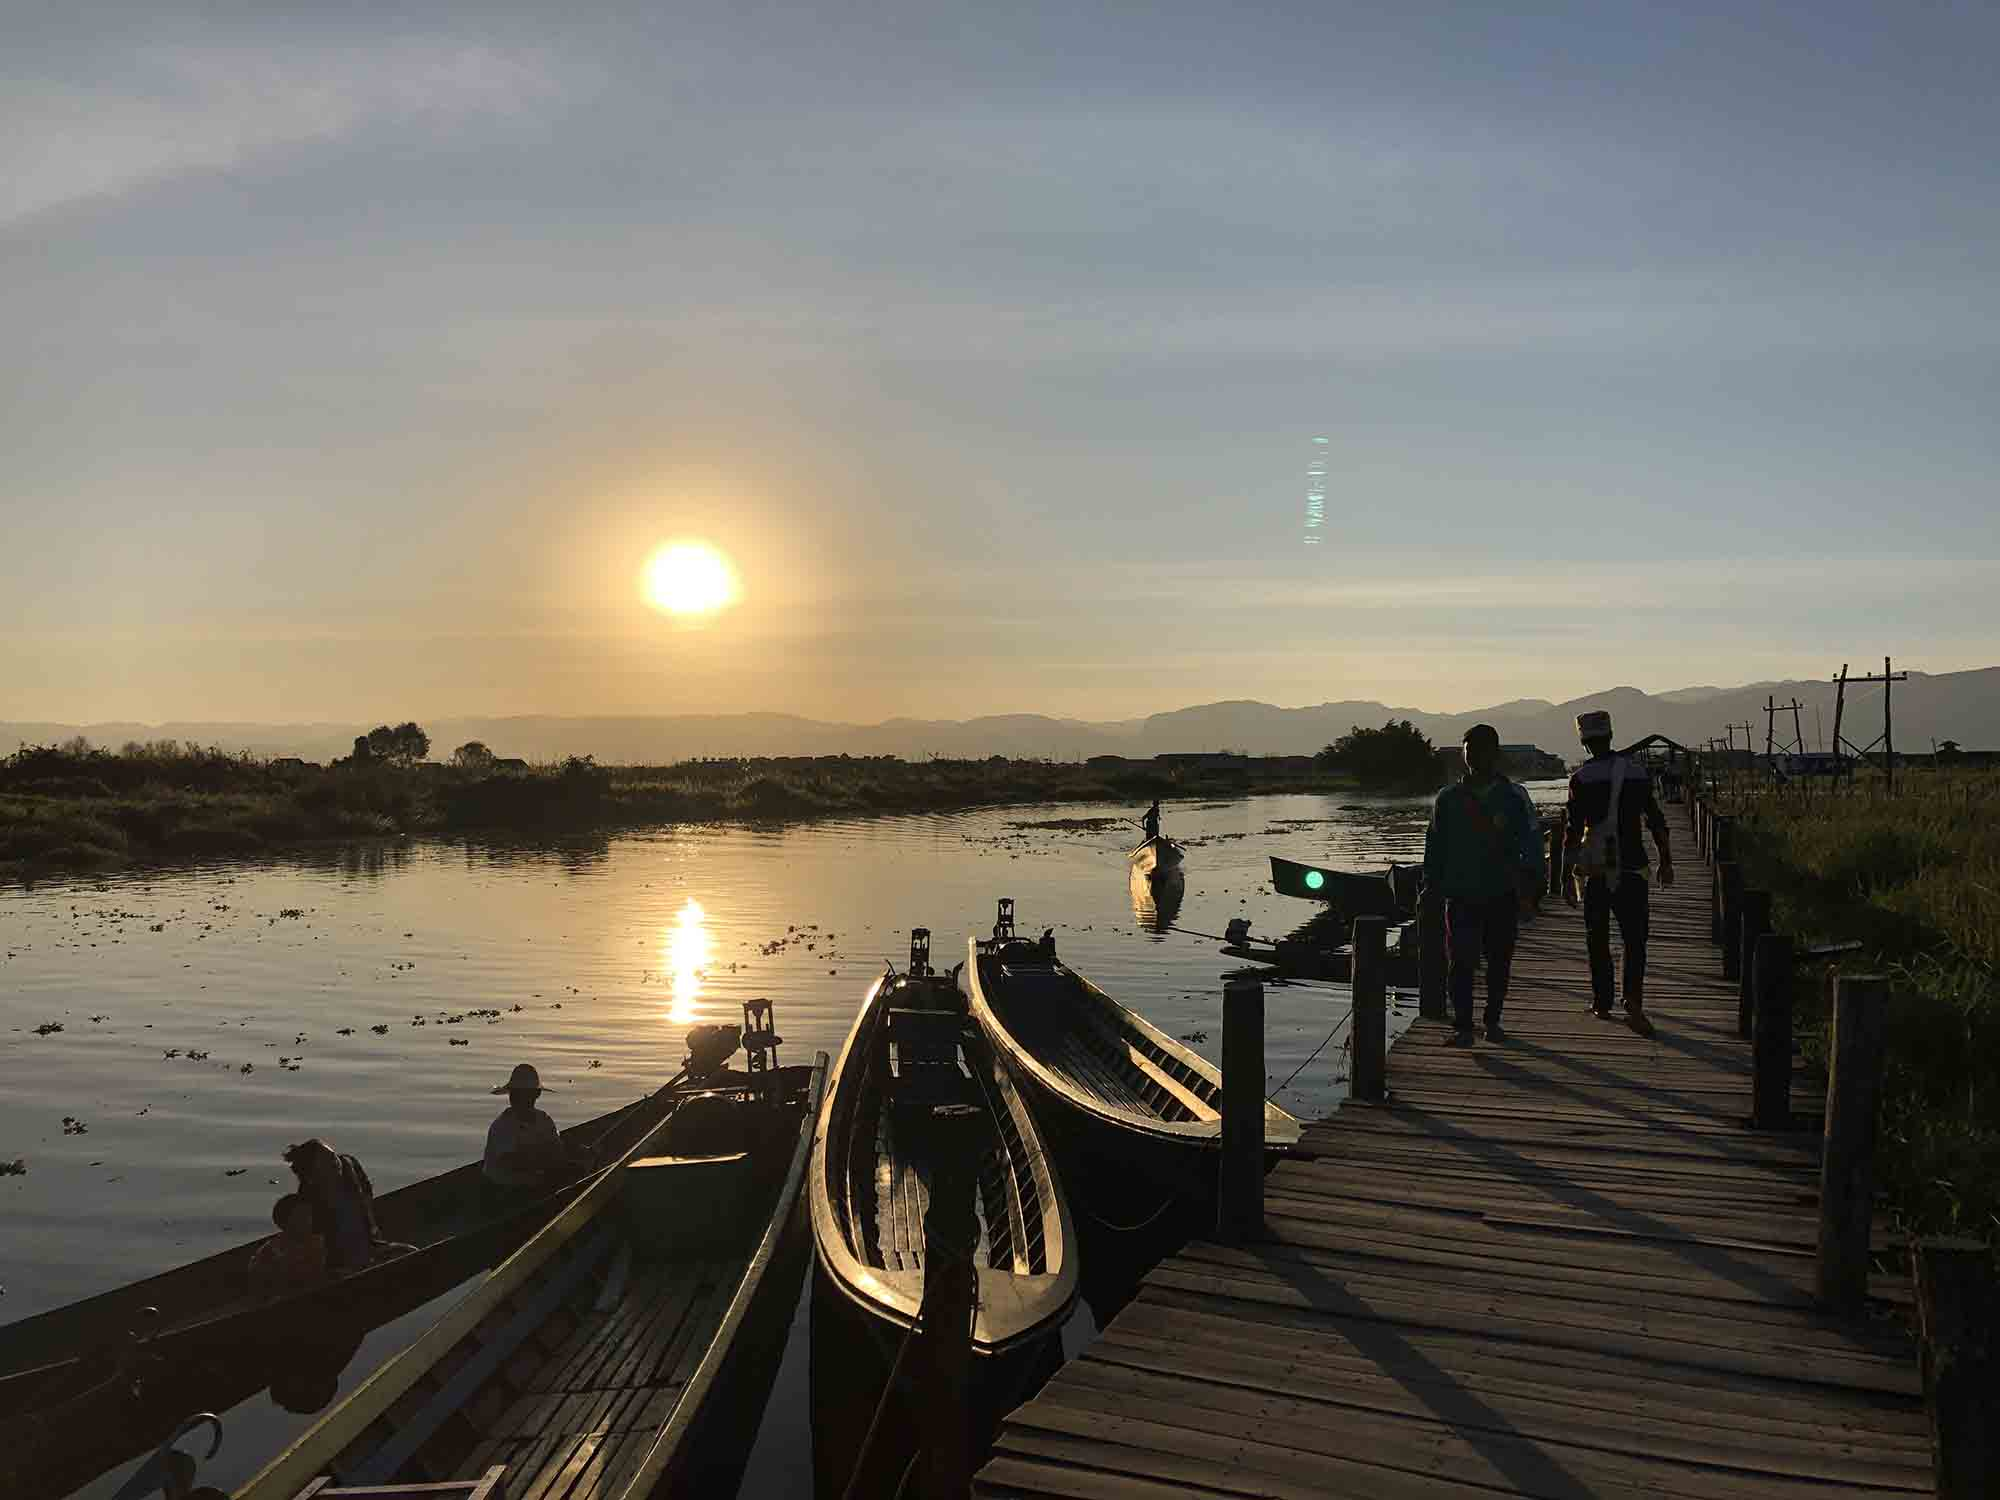 Explore Inle Lake by bike or boat?